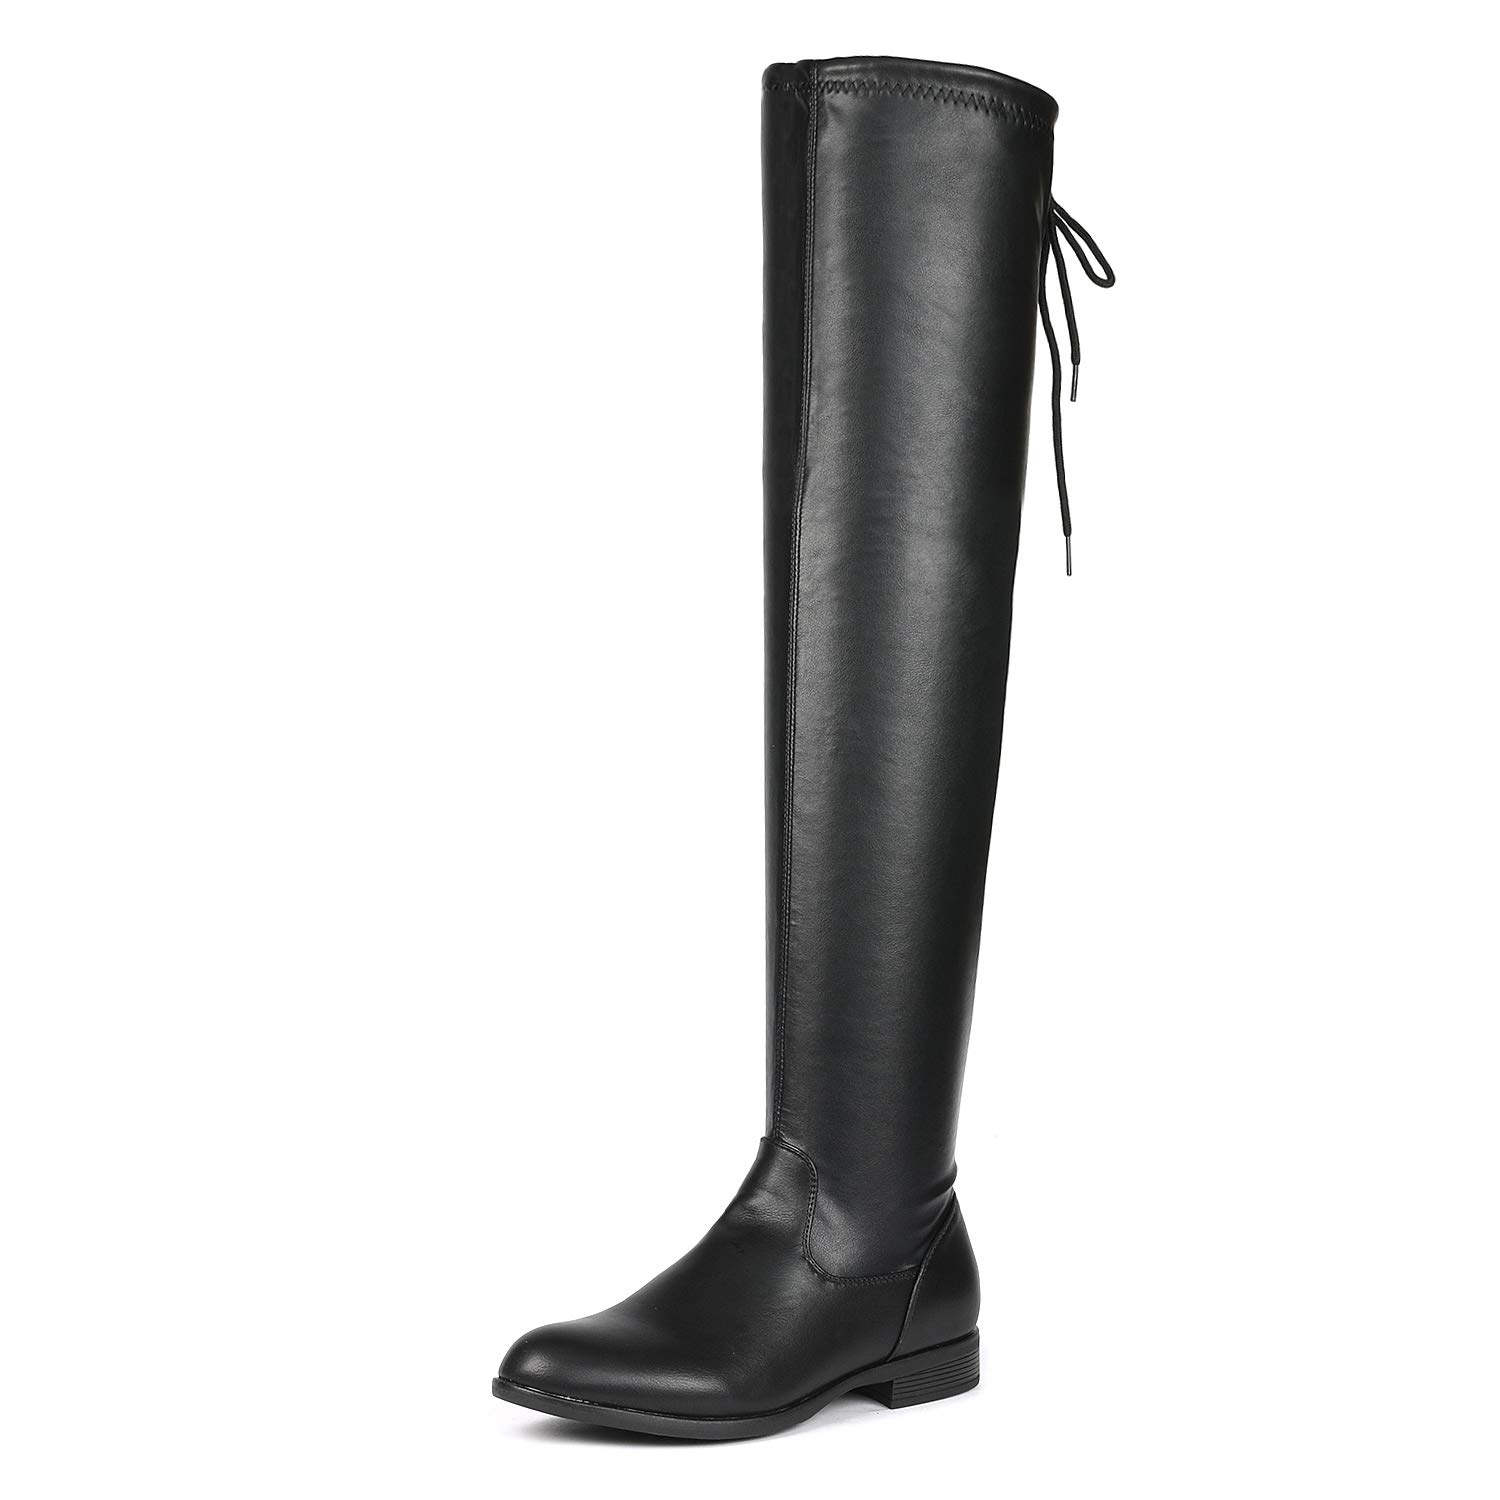 DREAM PAIRS Women's OVERIDE Black PU Low Heel Thigh High Over The Knee Flat Boots Size 8.5 B(M) US